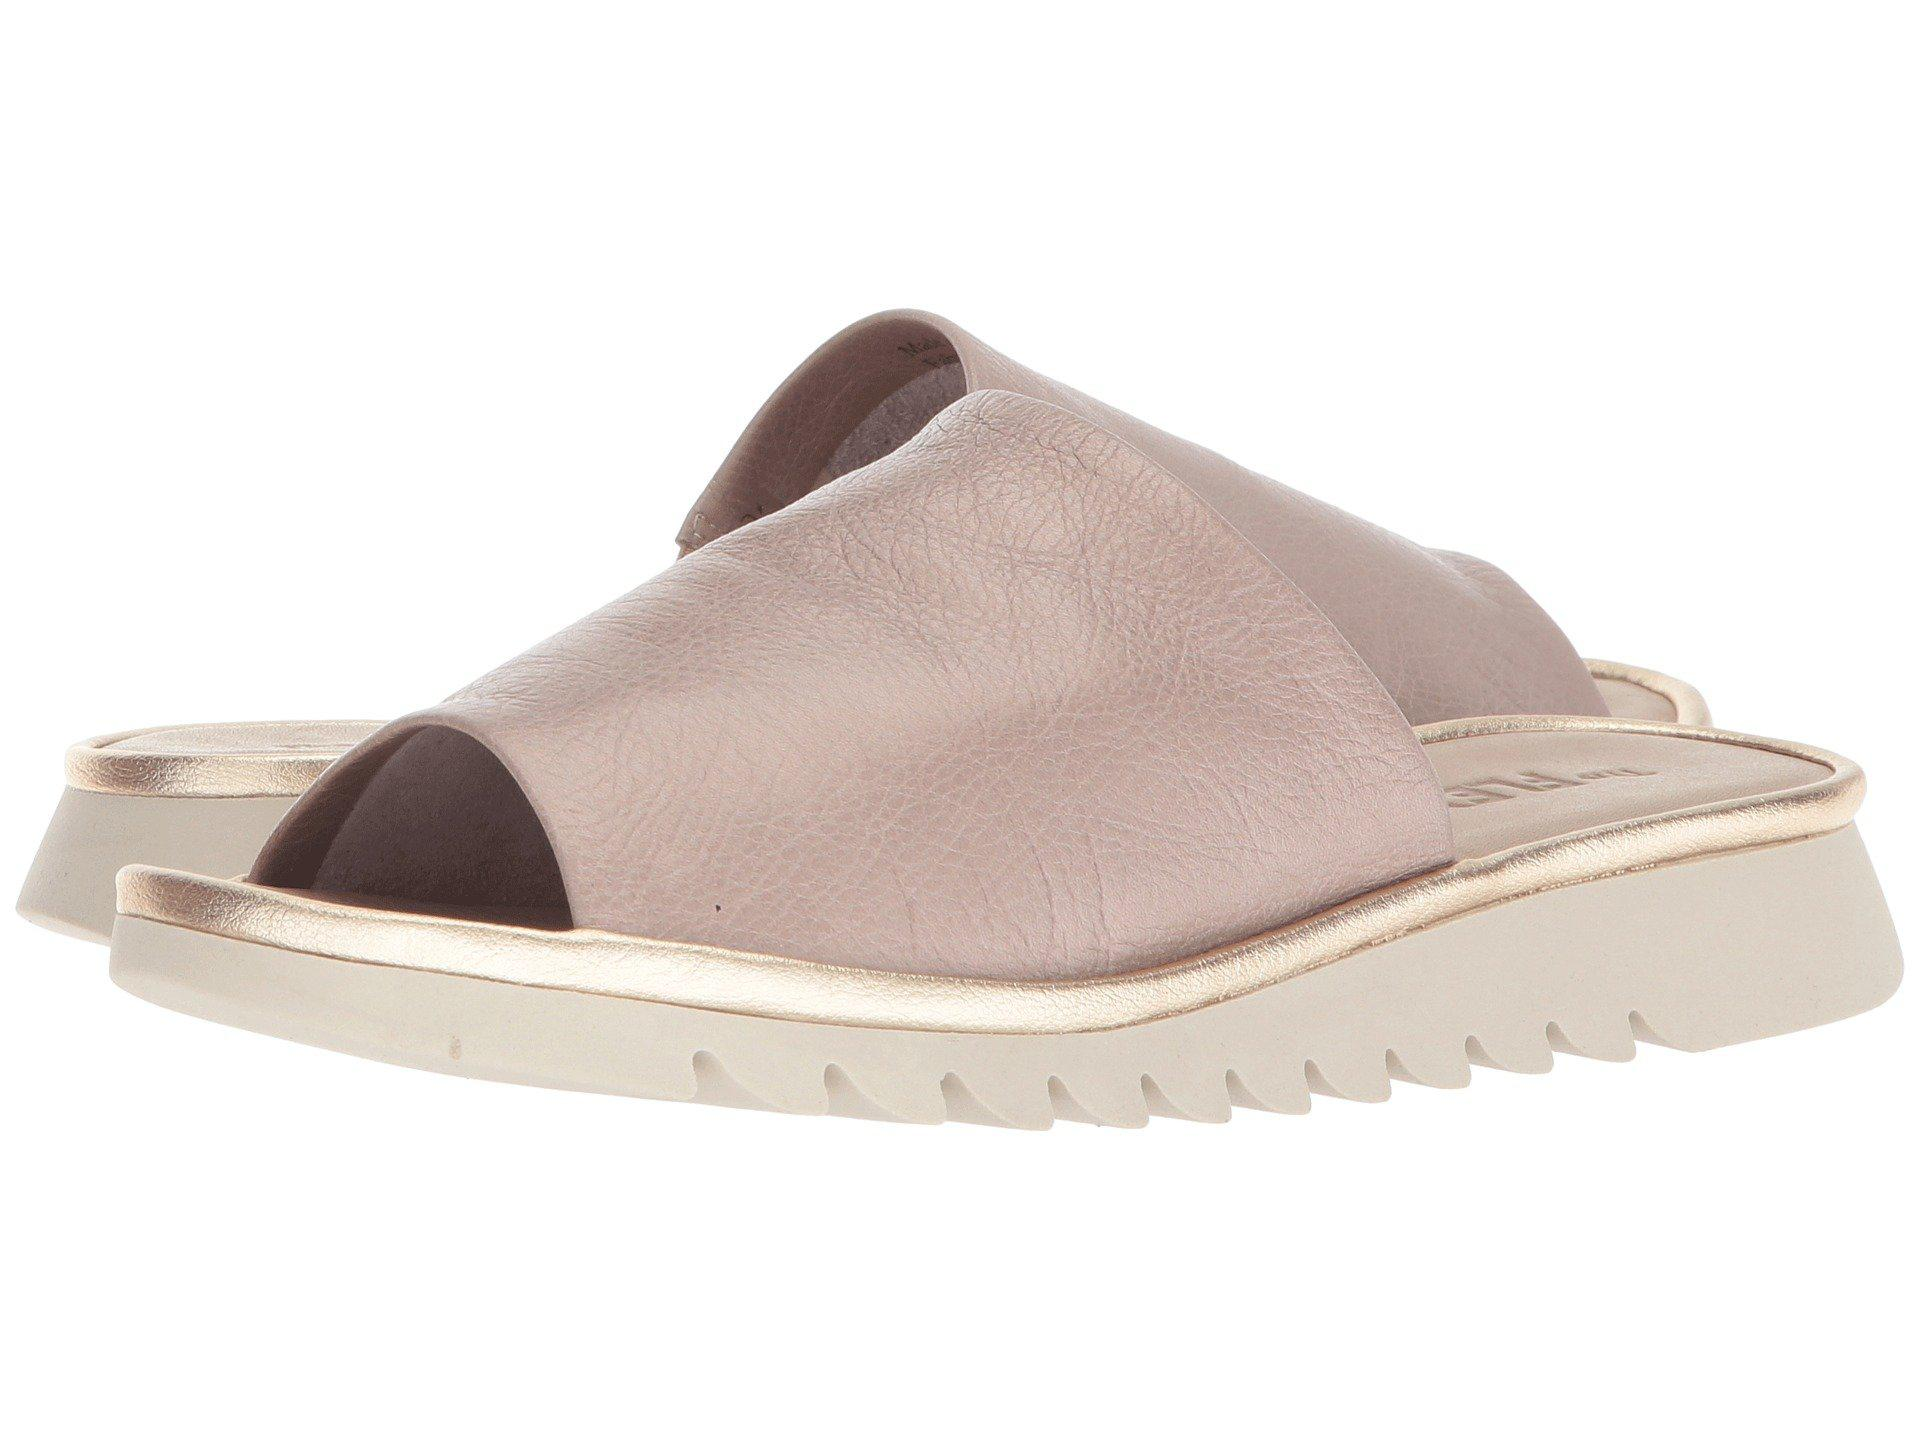 The Flexx Women's Shore Thing Slide Sandal Vjdf5xWtc6